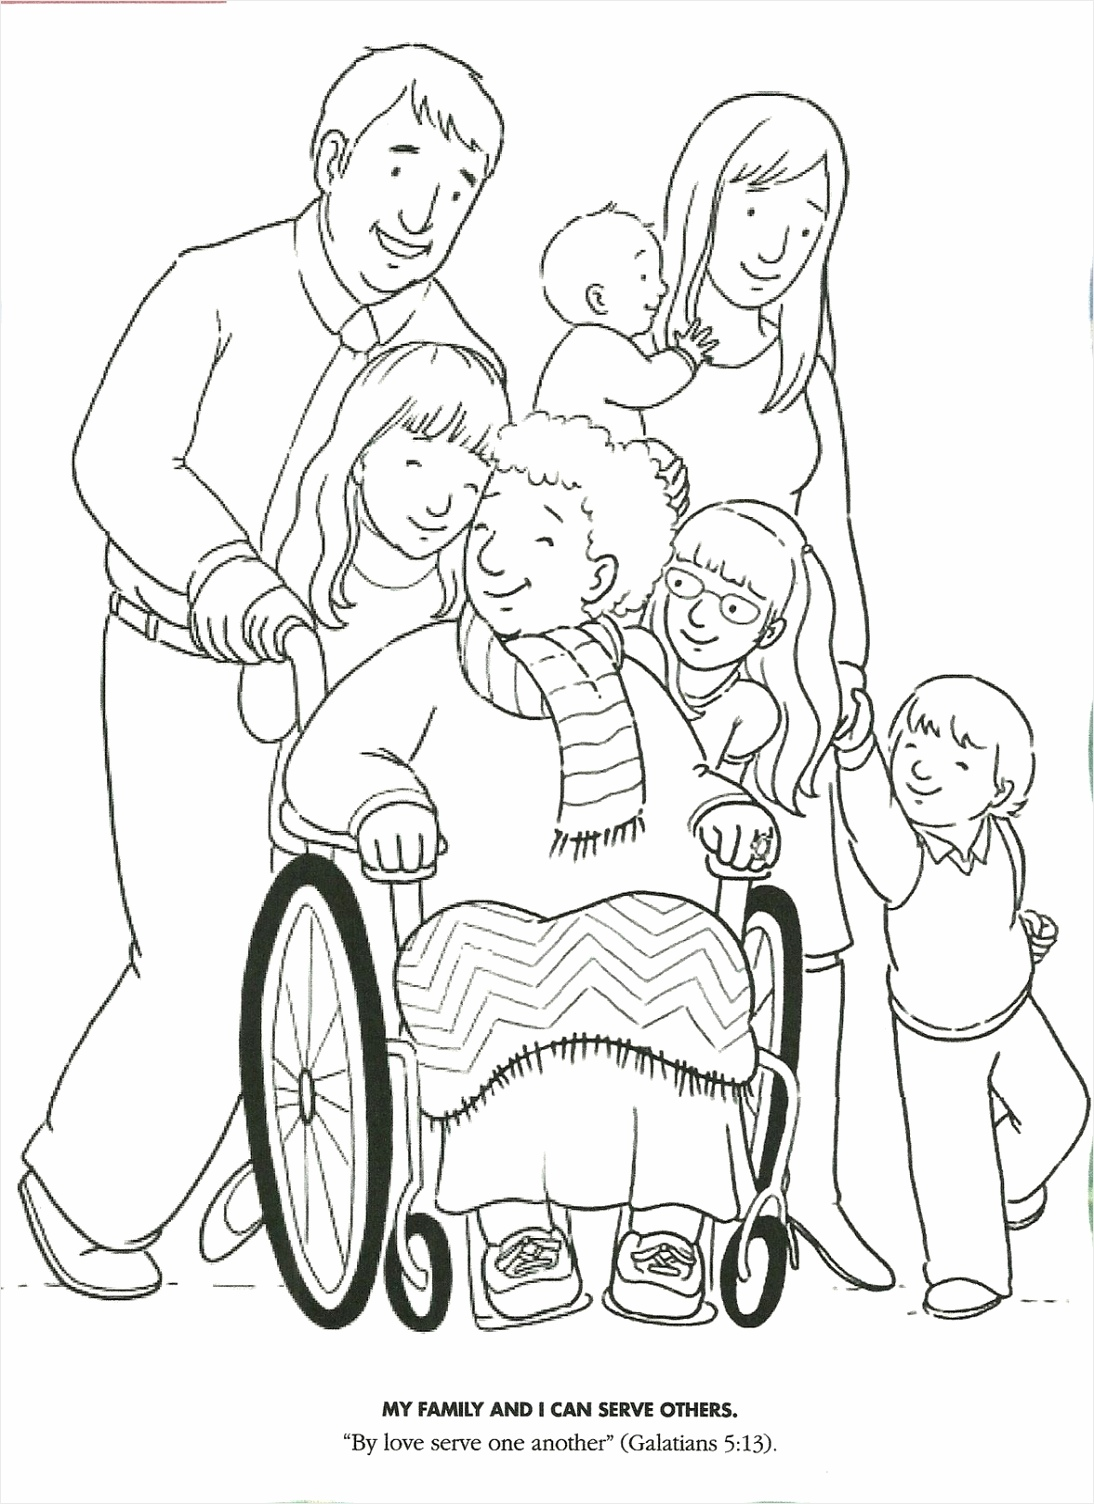 and client id=CLIENT ID &mweb unauth id= defaultssion&amp url= s:// /amp/maureen thiele/coloring pages/ trkap